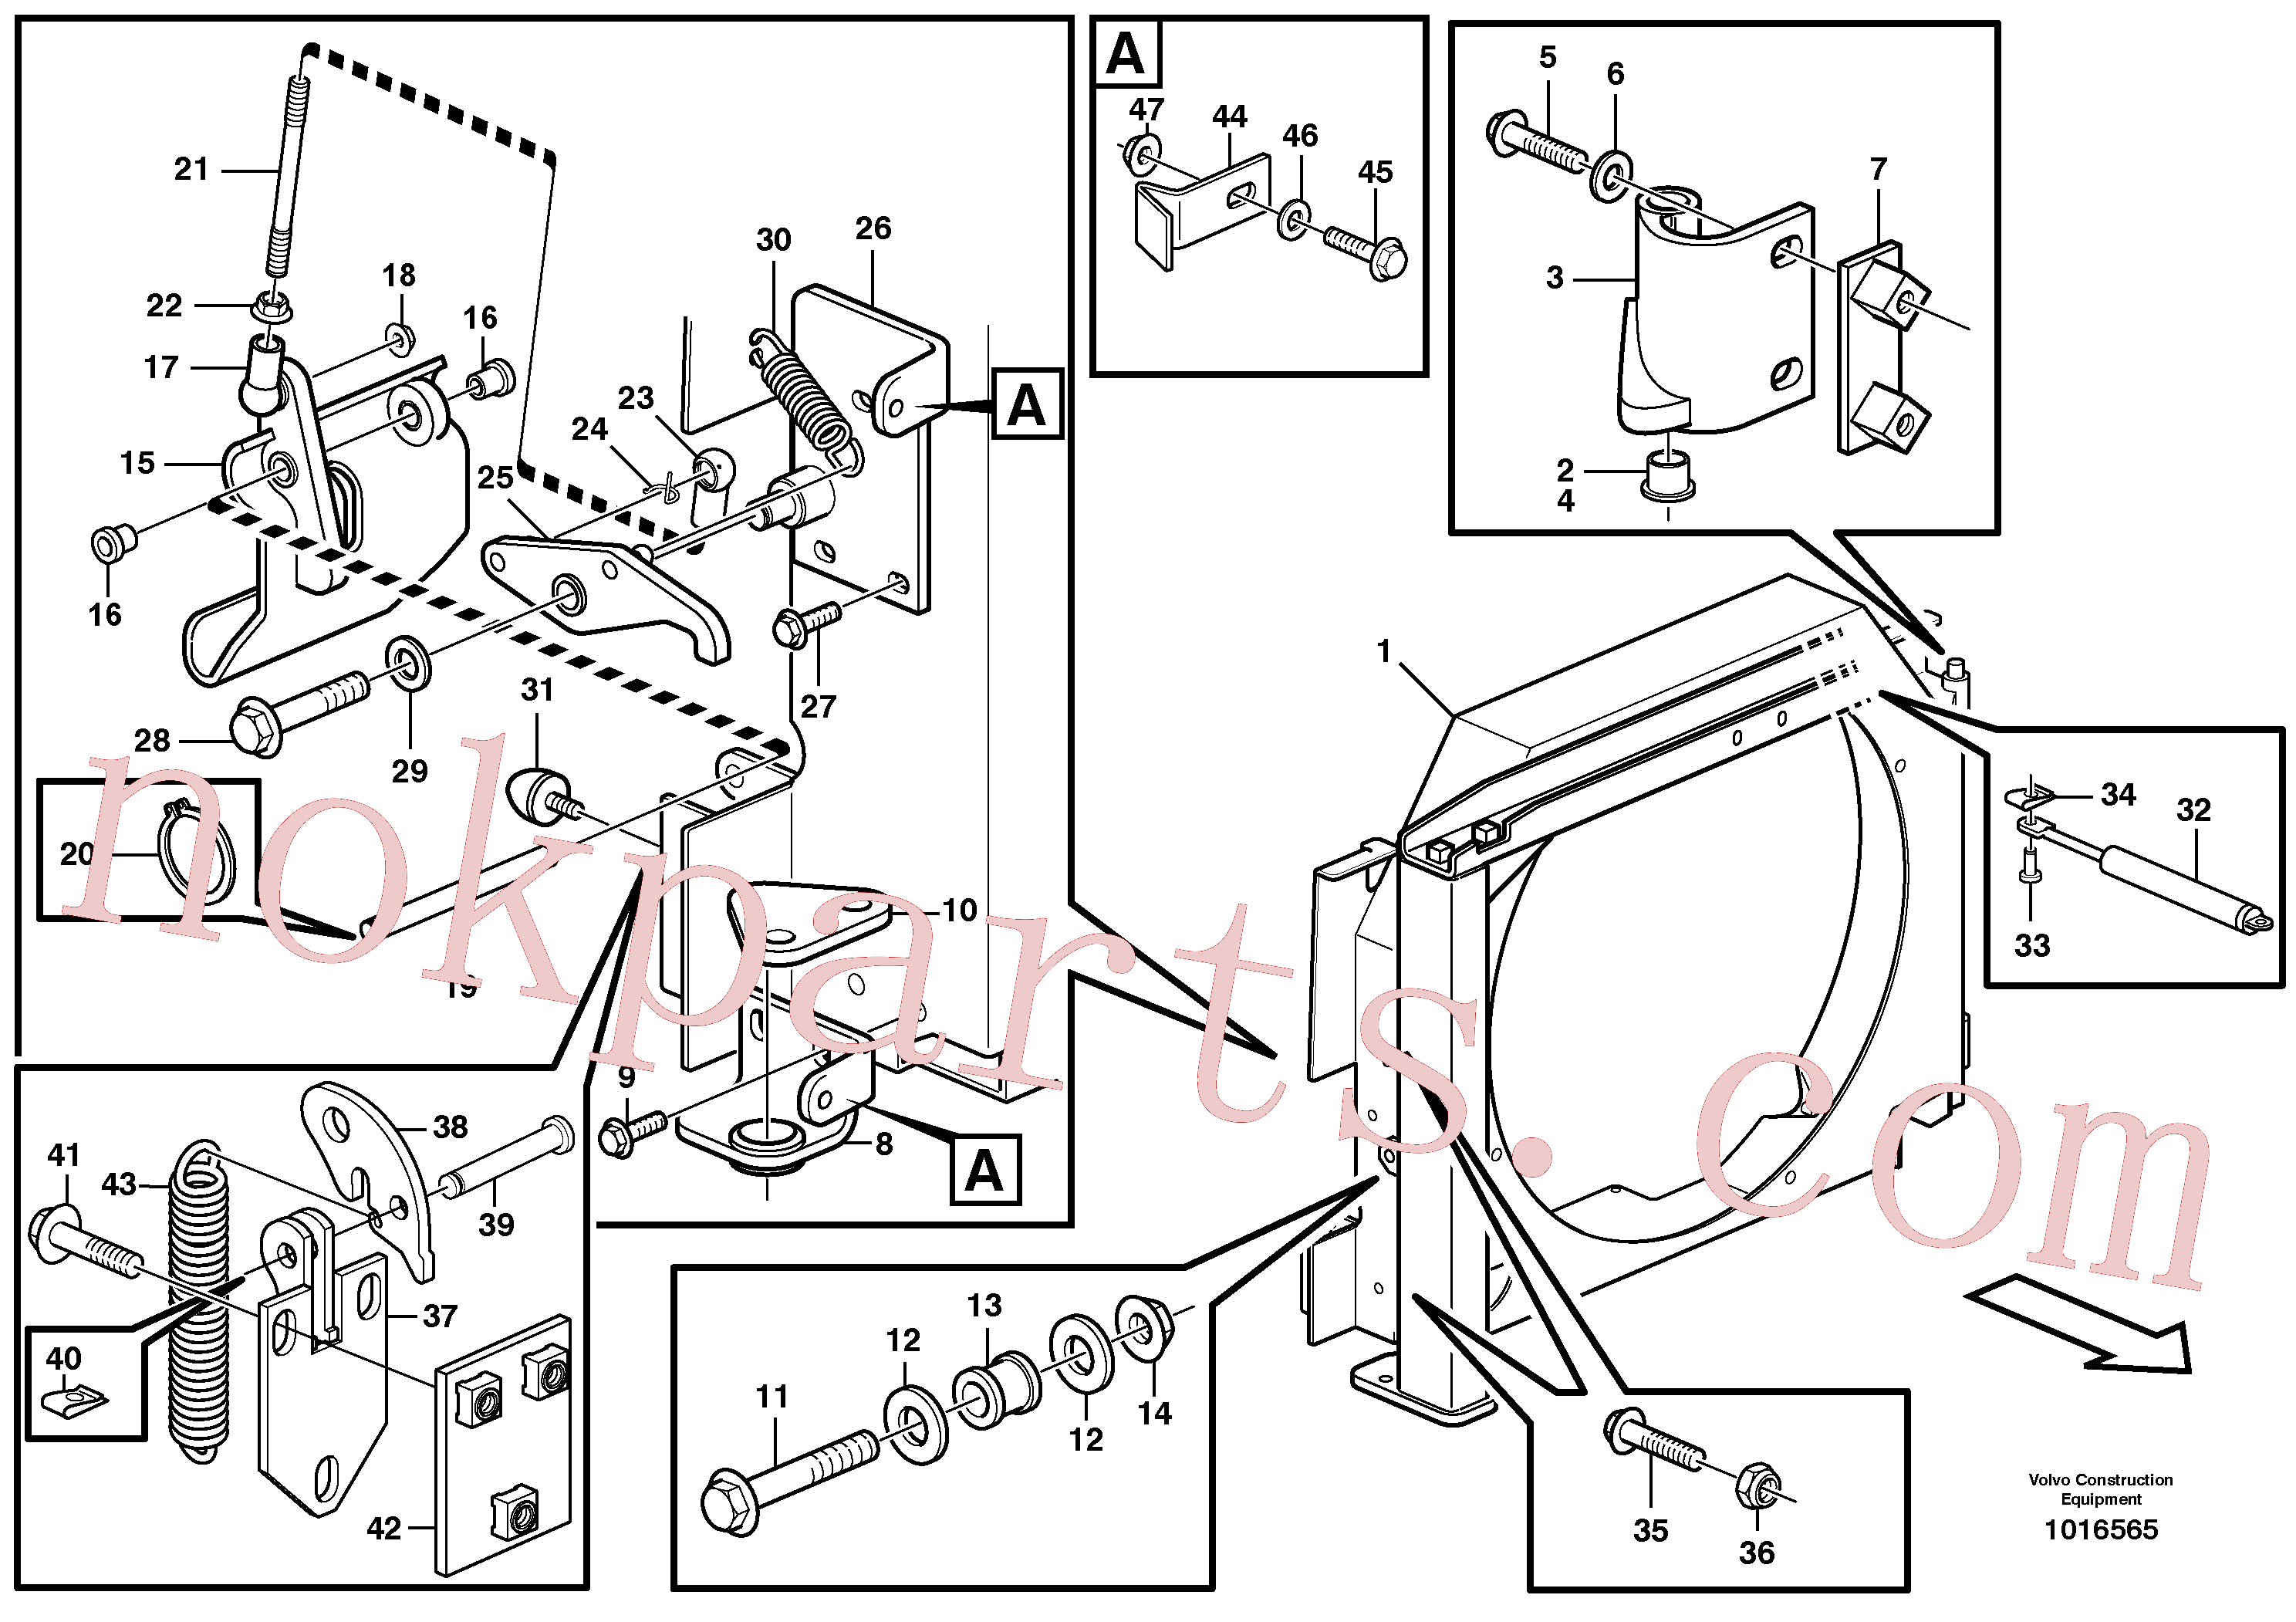 VOE4881758 for Volvo Fan housing with fitting parts(1016565 assembly)